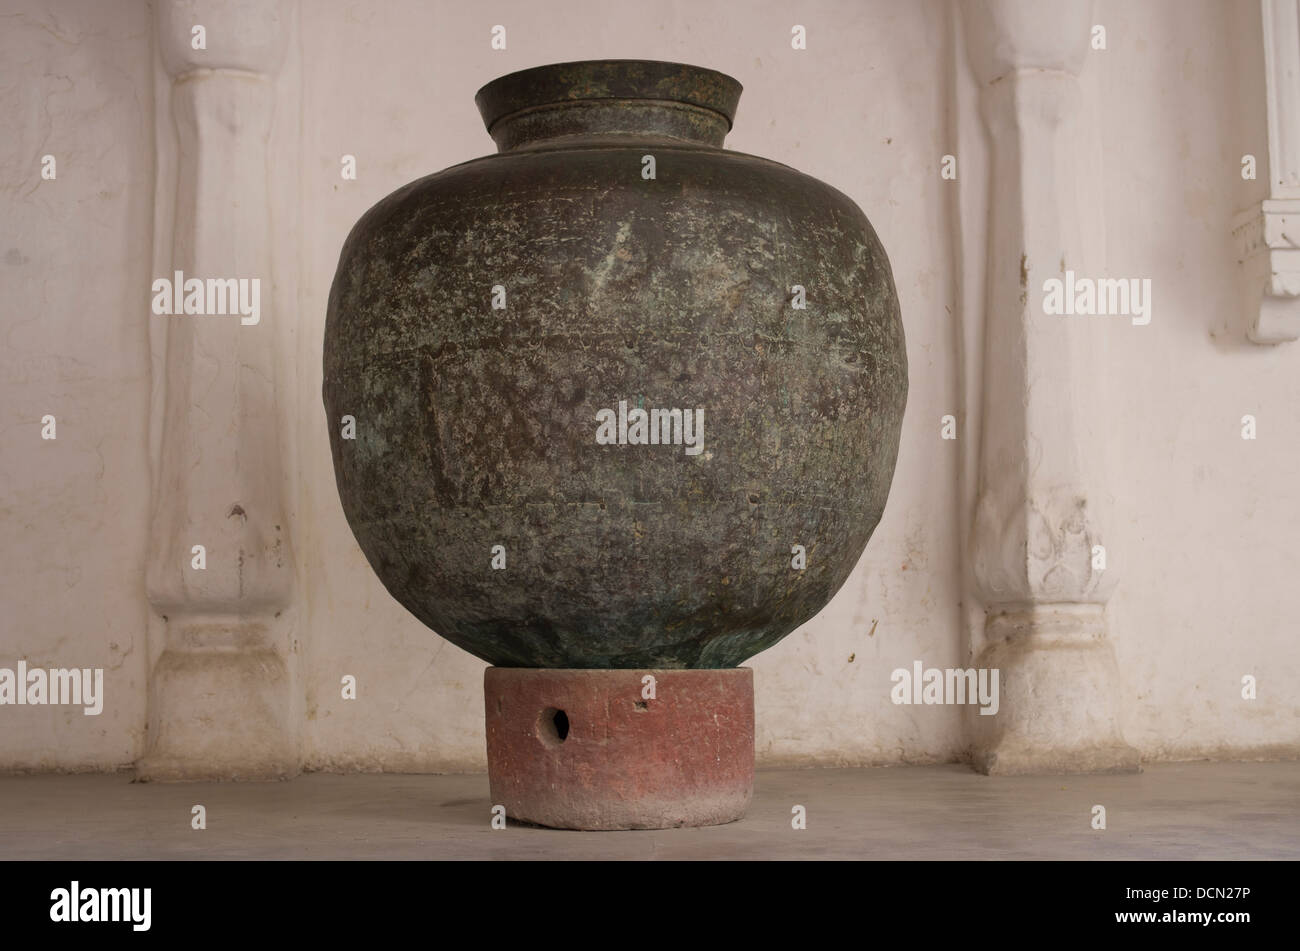 Vase at Meherangarh Fort - Jodhpur, Rajashtan, India - Stock Image